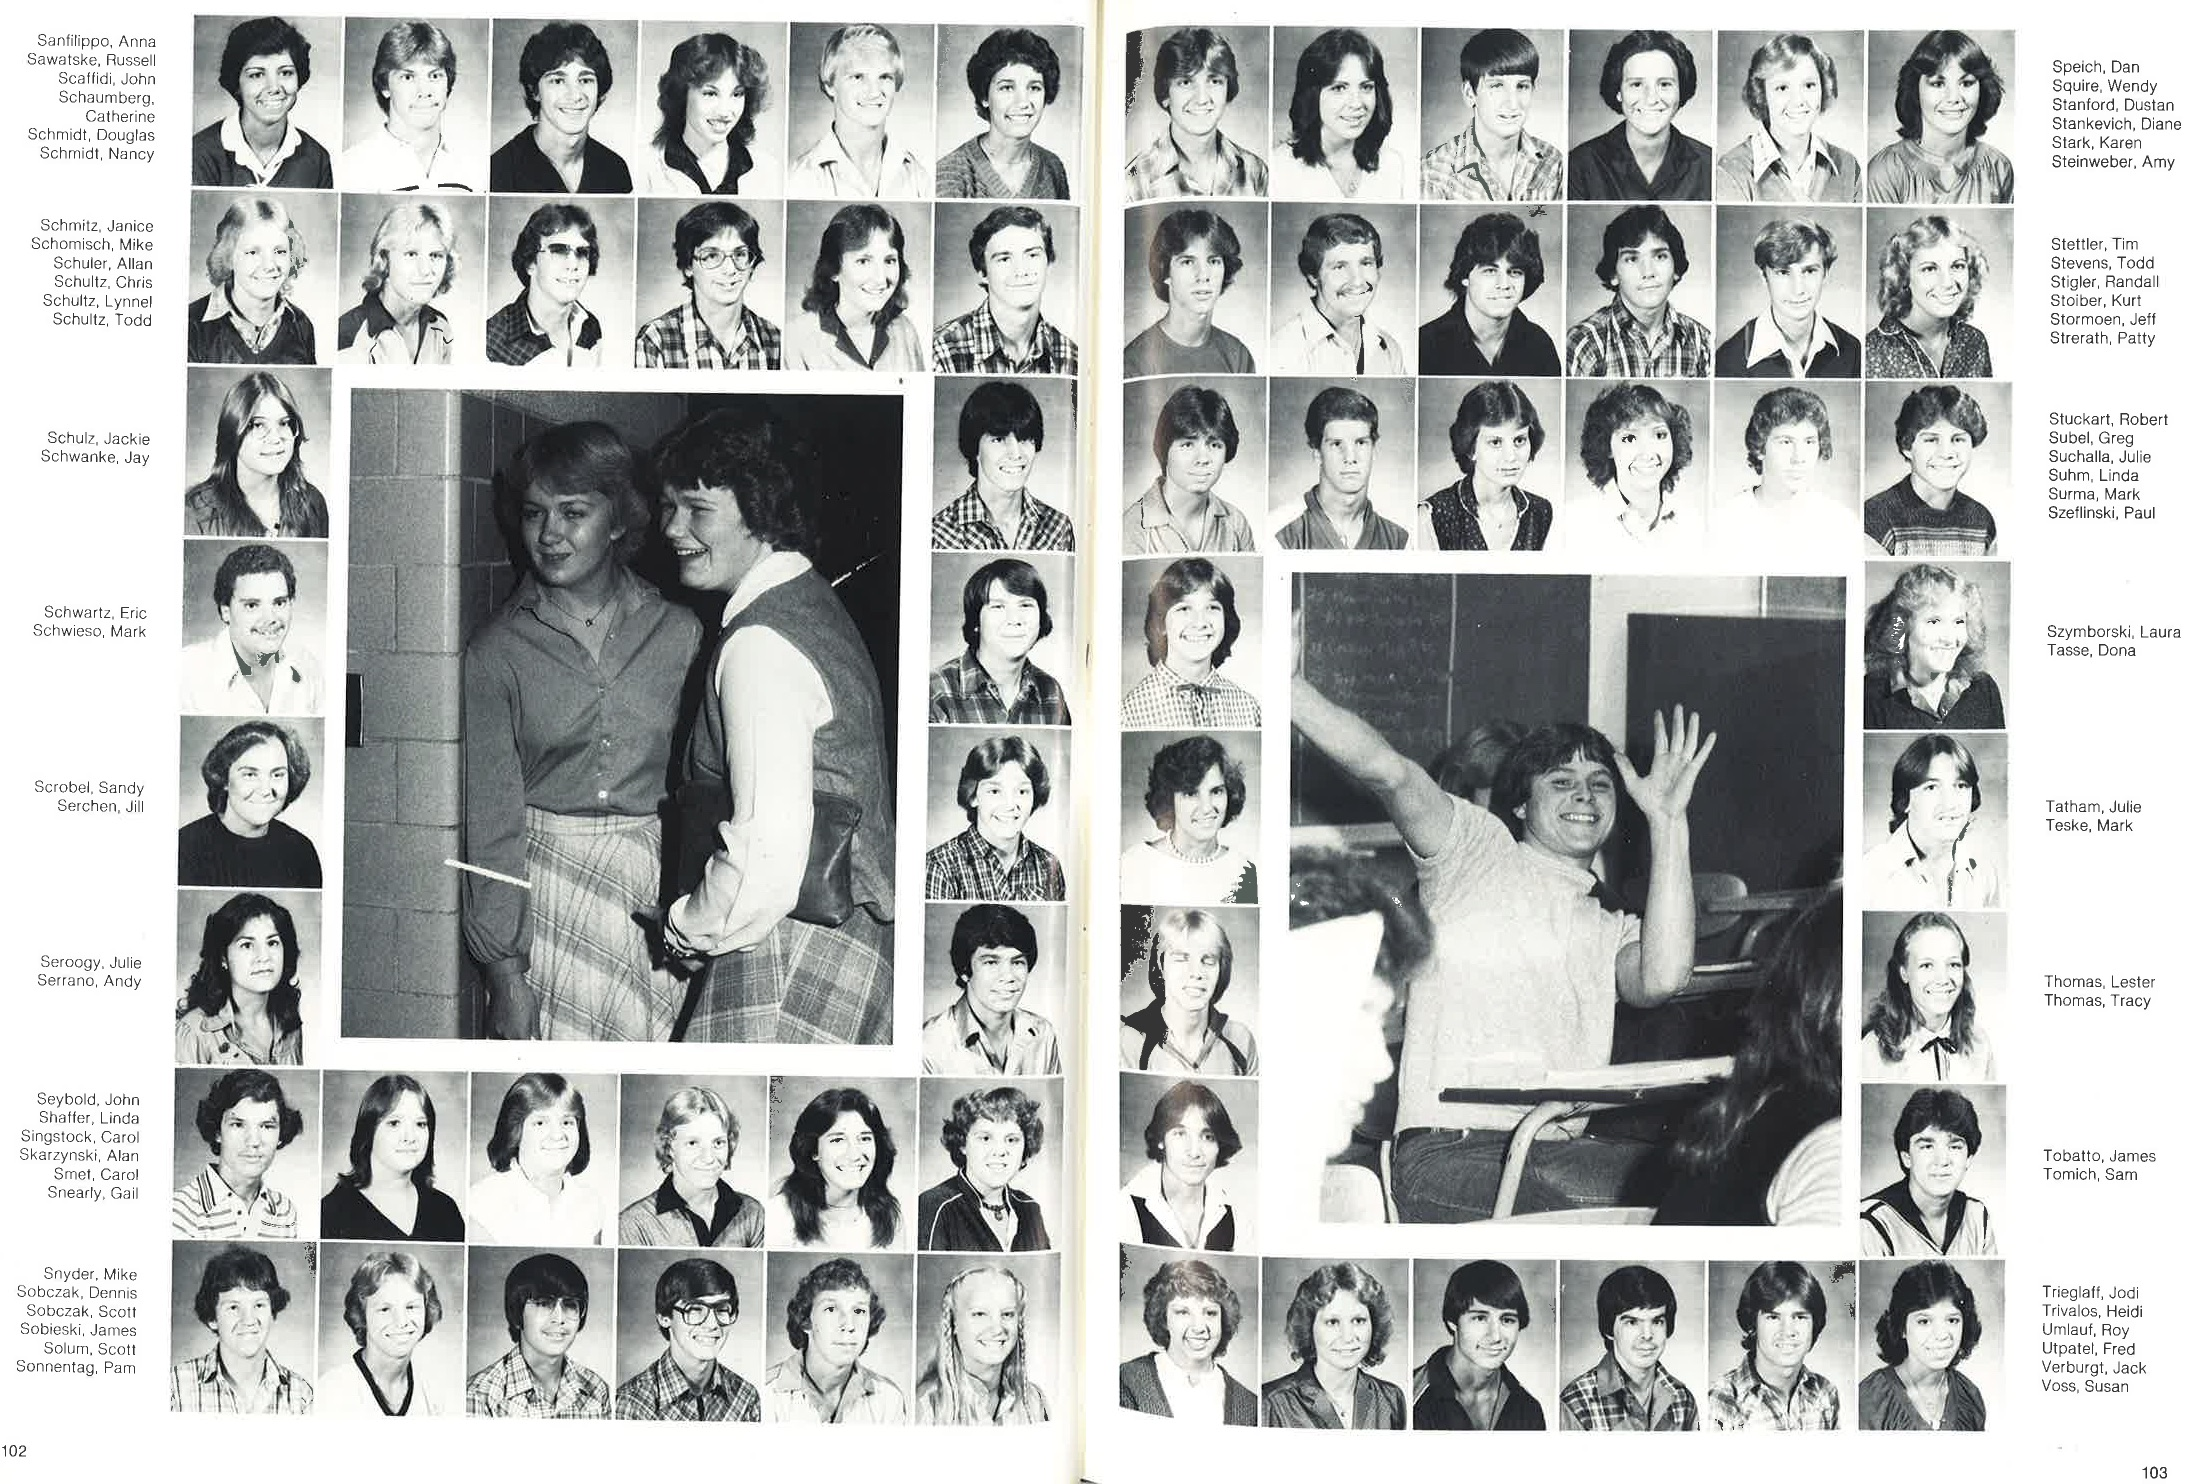 1981_Yearbook_102.jpg